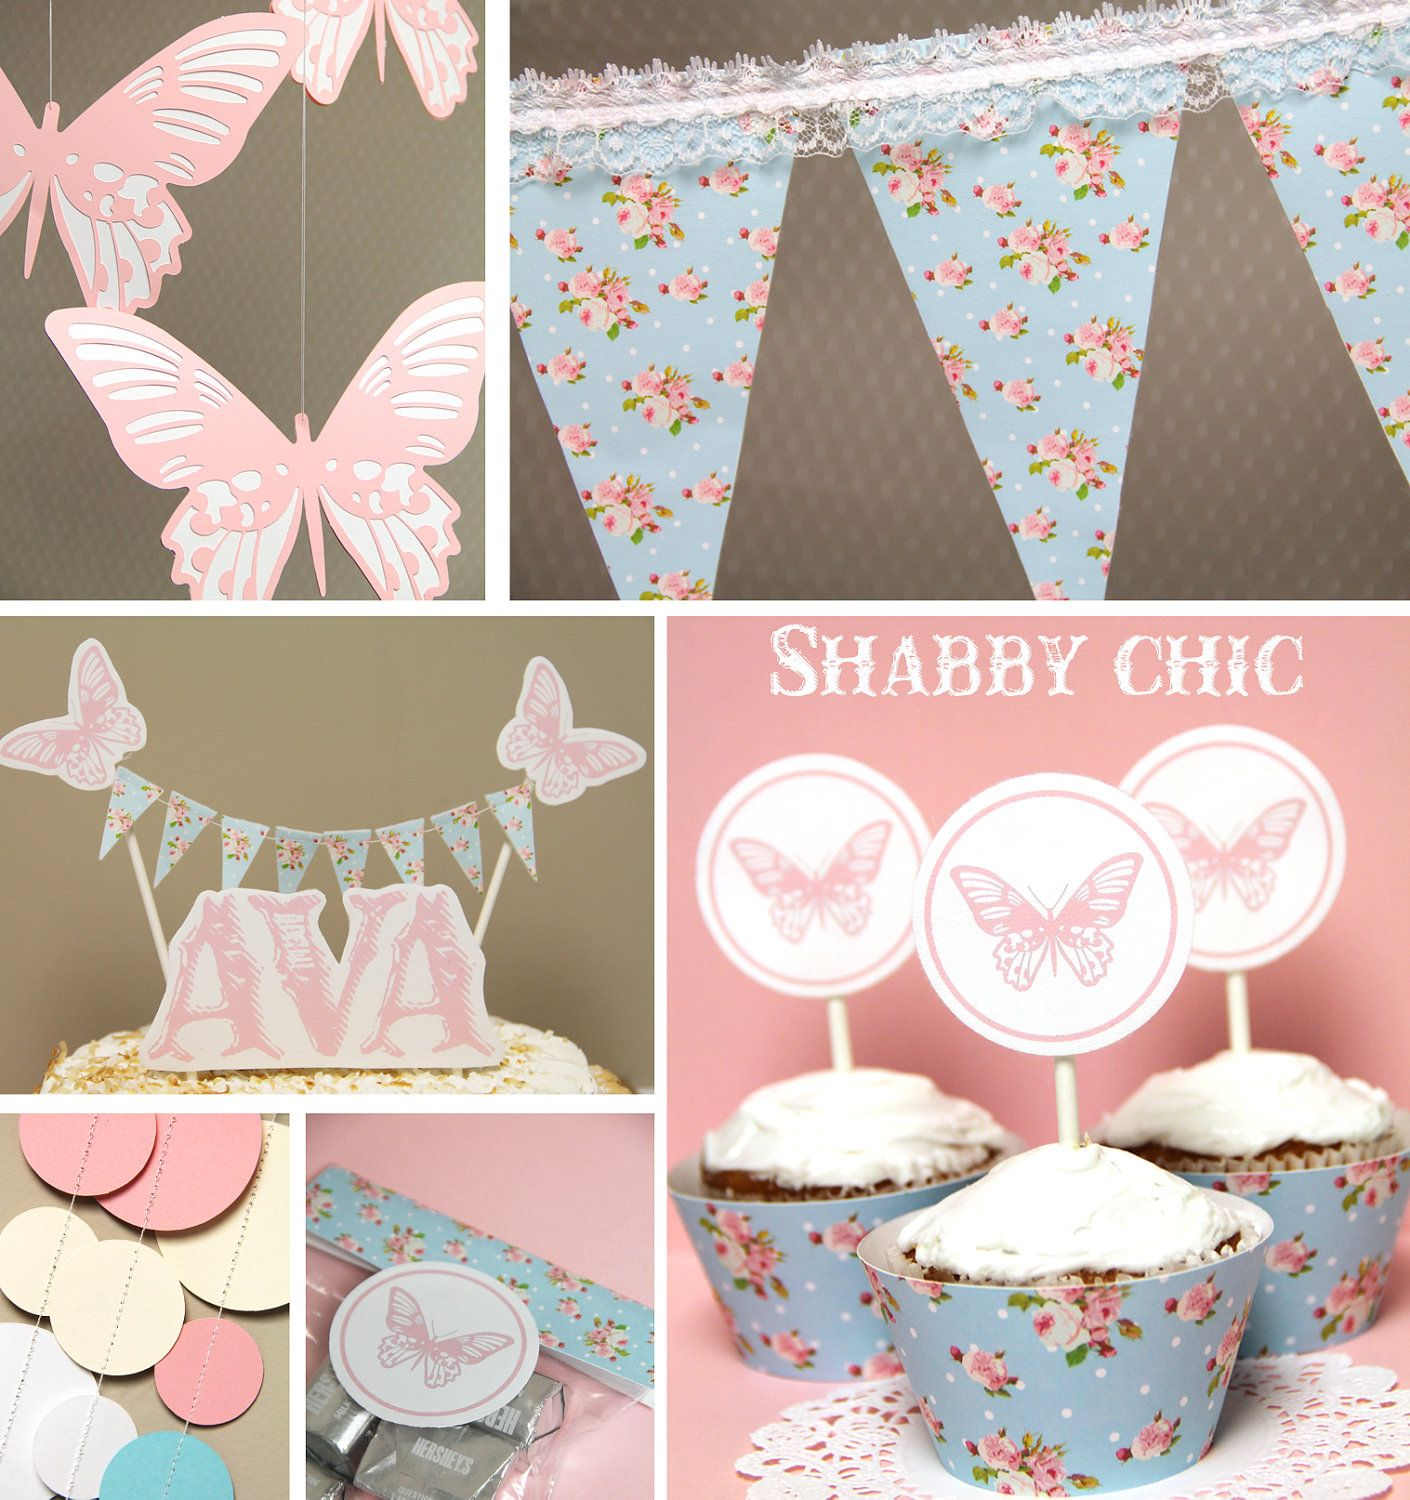 Shabby Chic Birthday or Baby Shower Decorations by TaffieWishes $